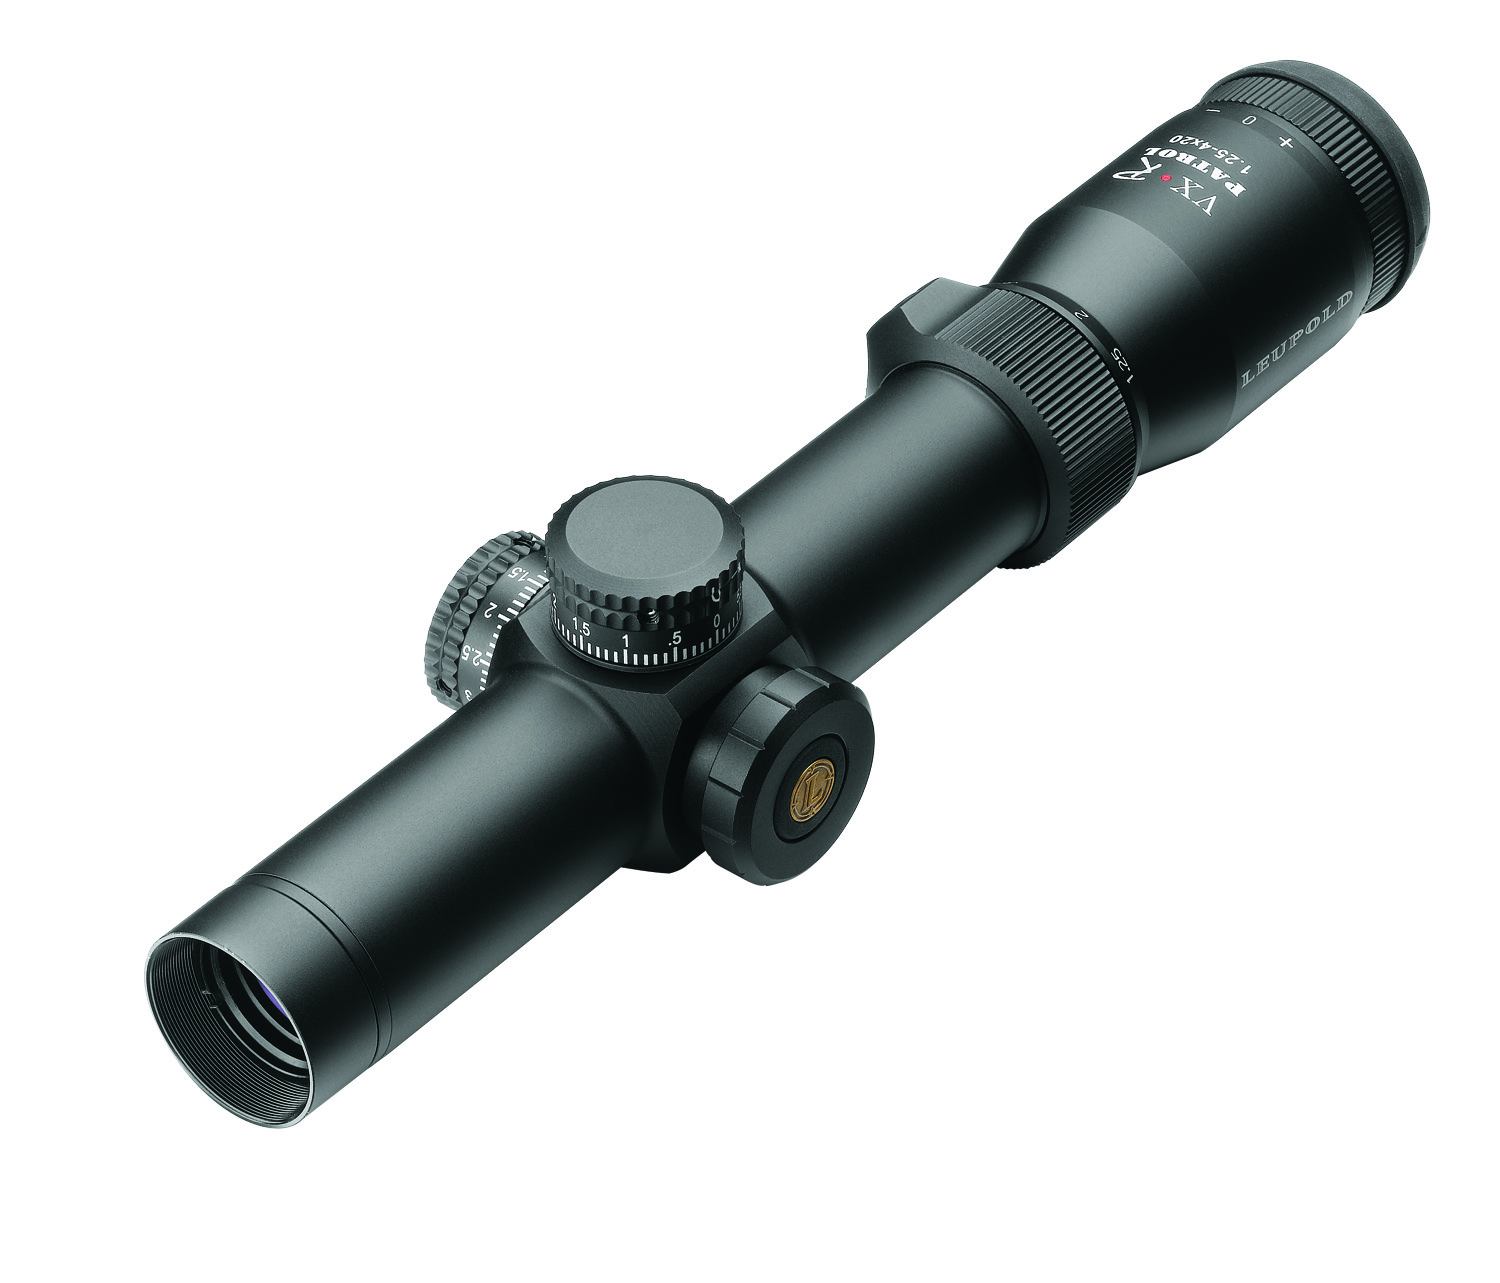 The New Leupold VX R Patrol Illuminated Riflescope